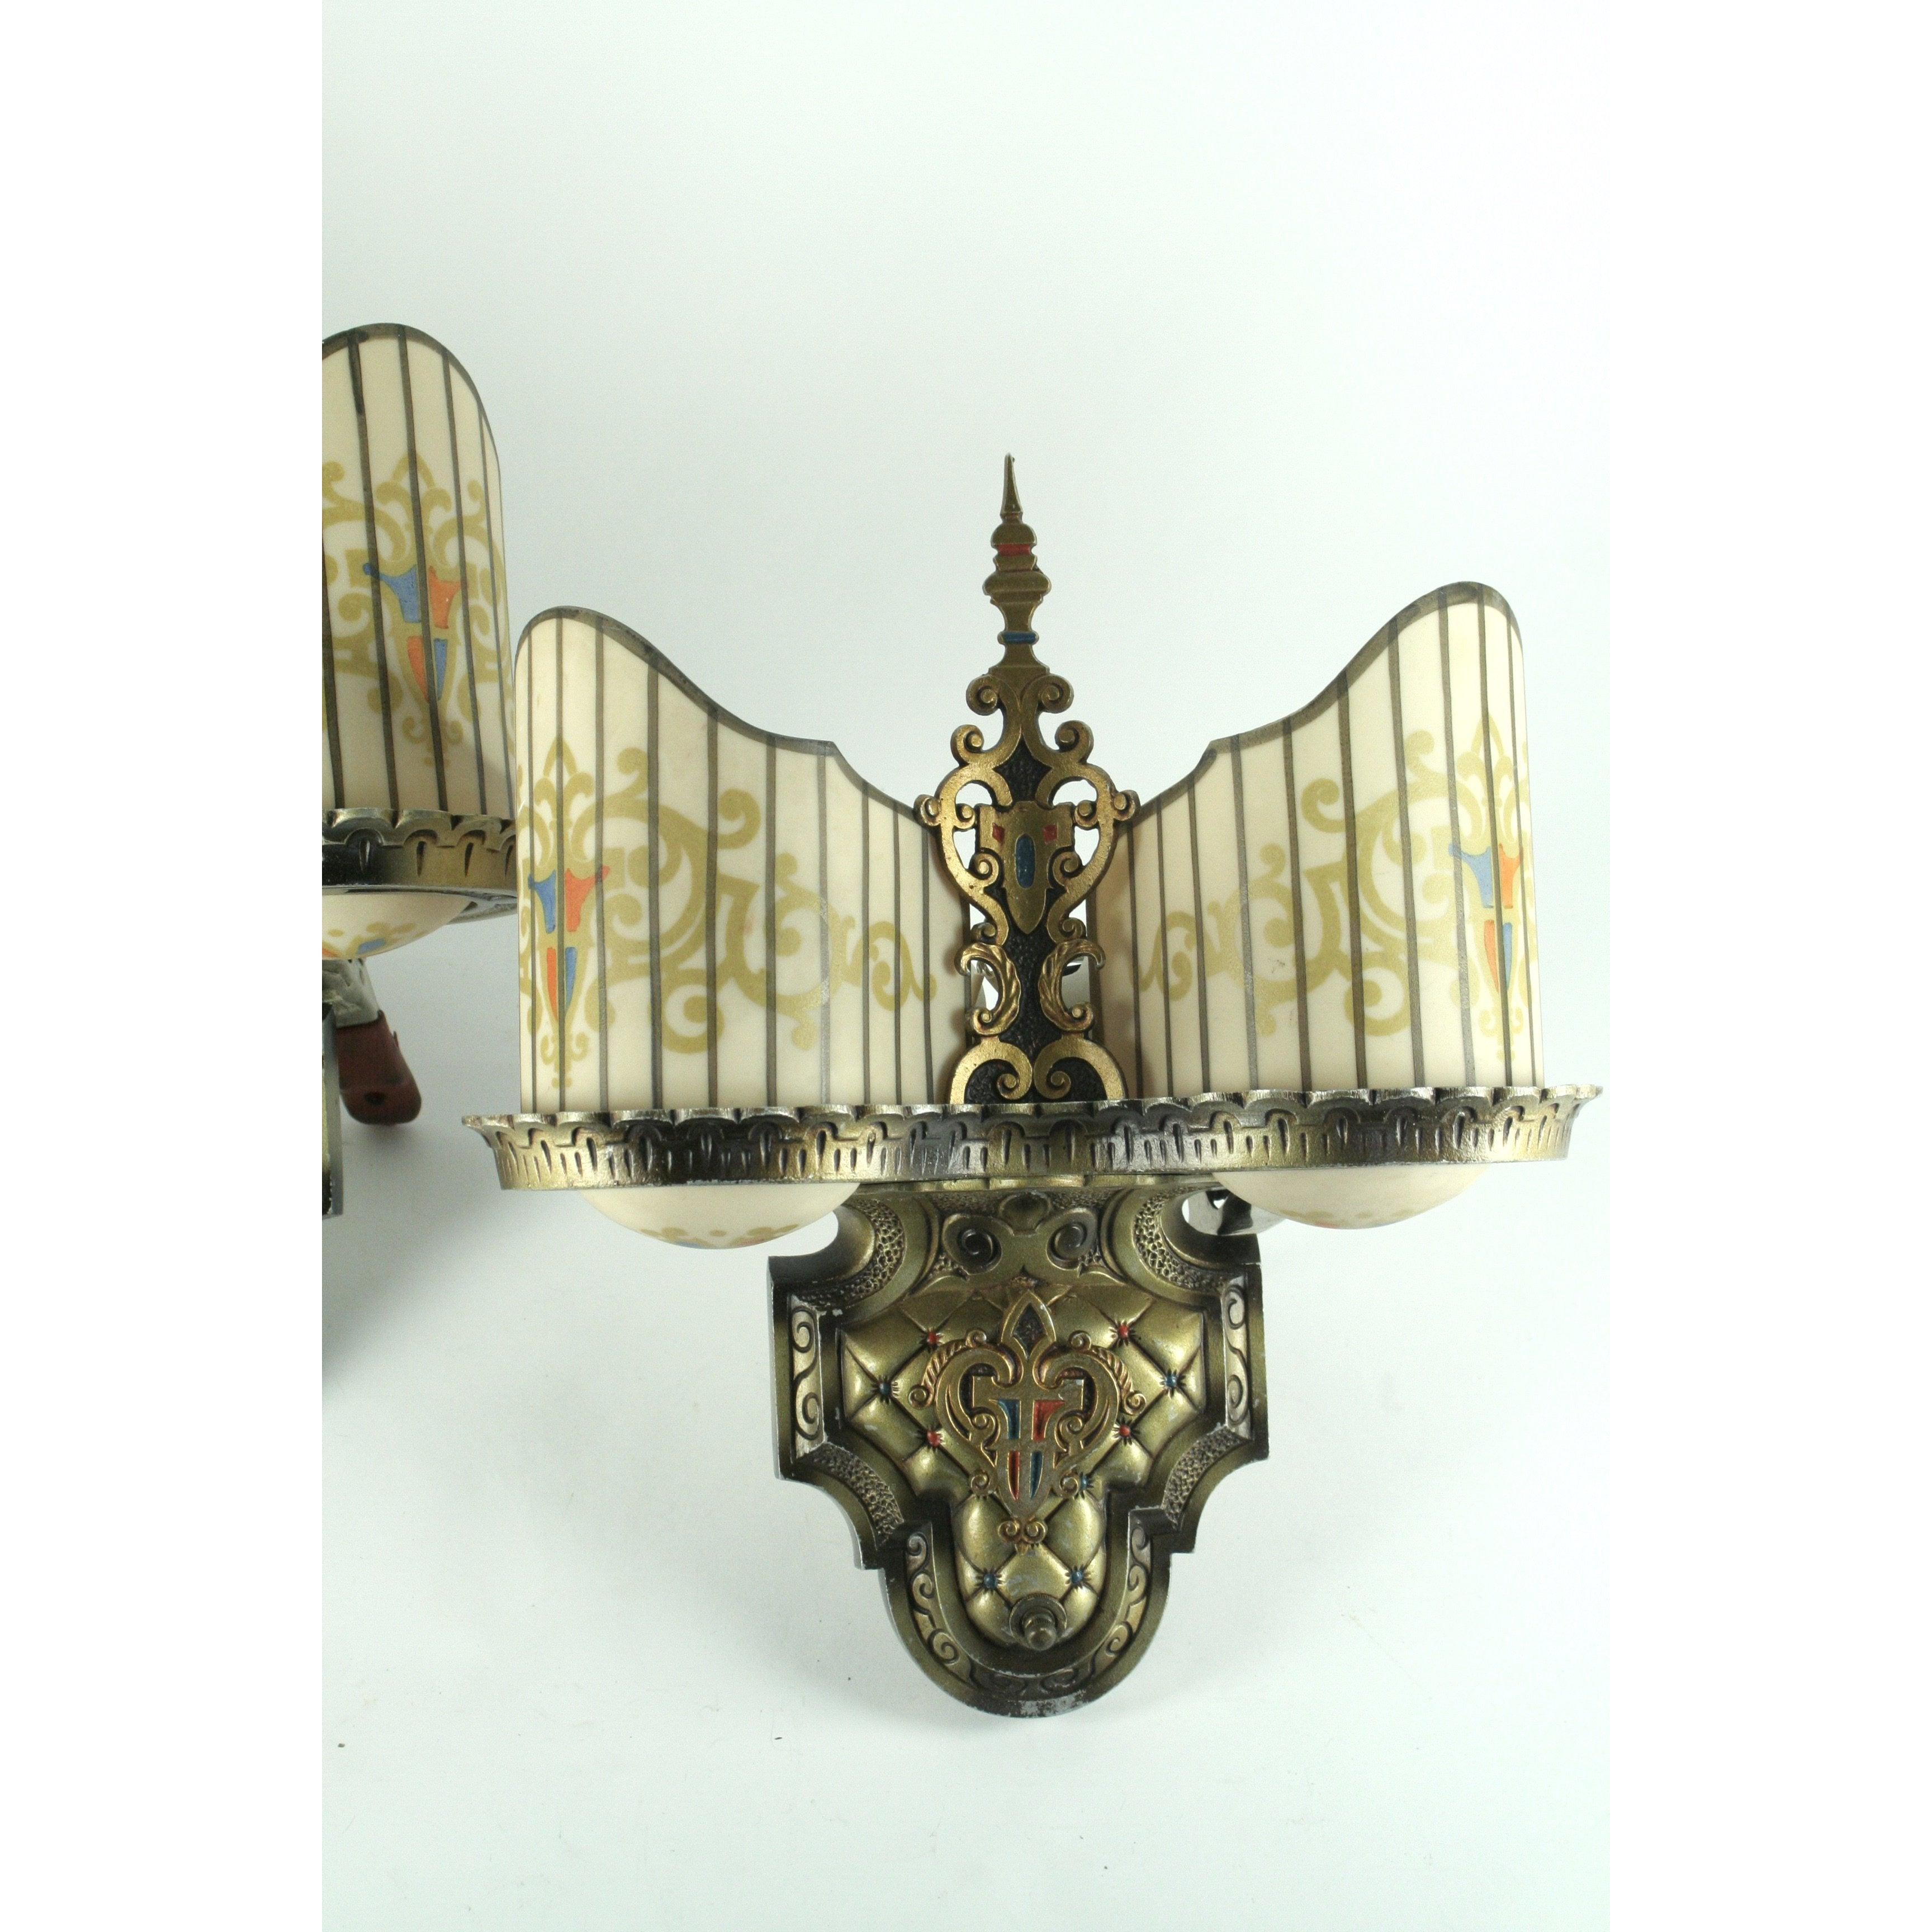 Beardslee Williamson art deco wall sconces